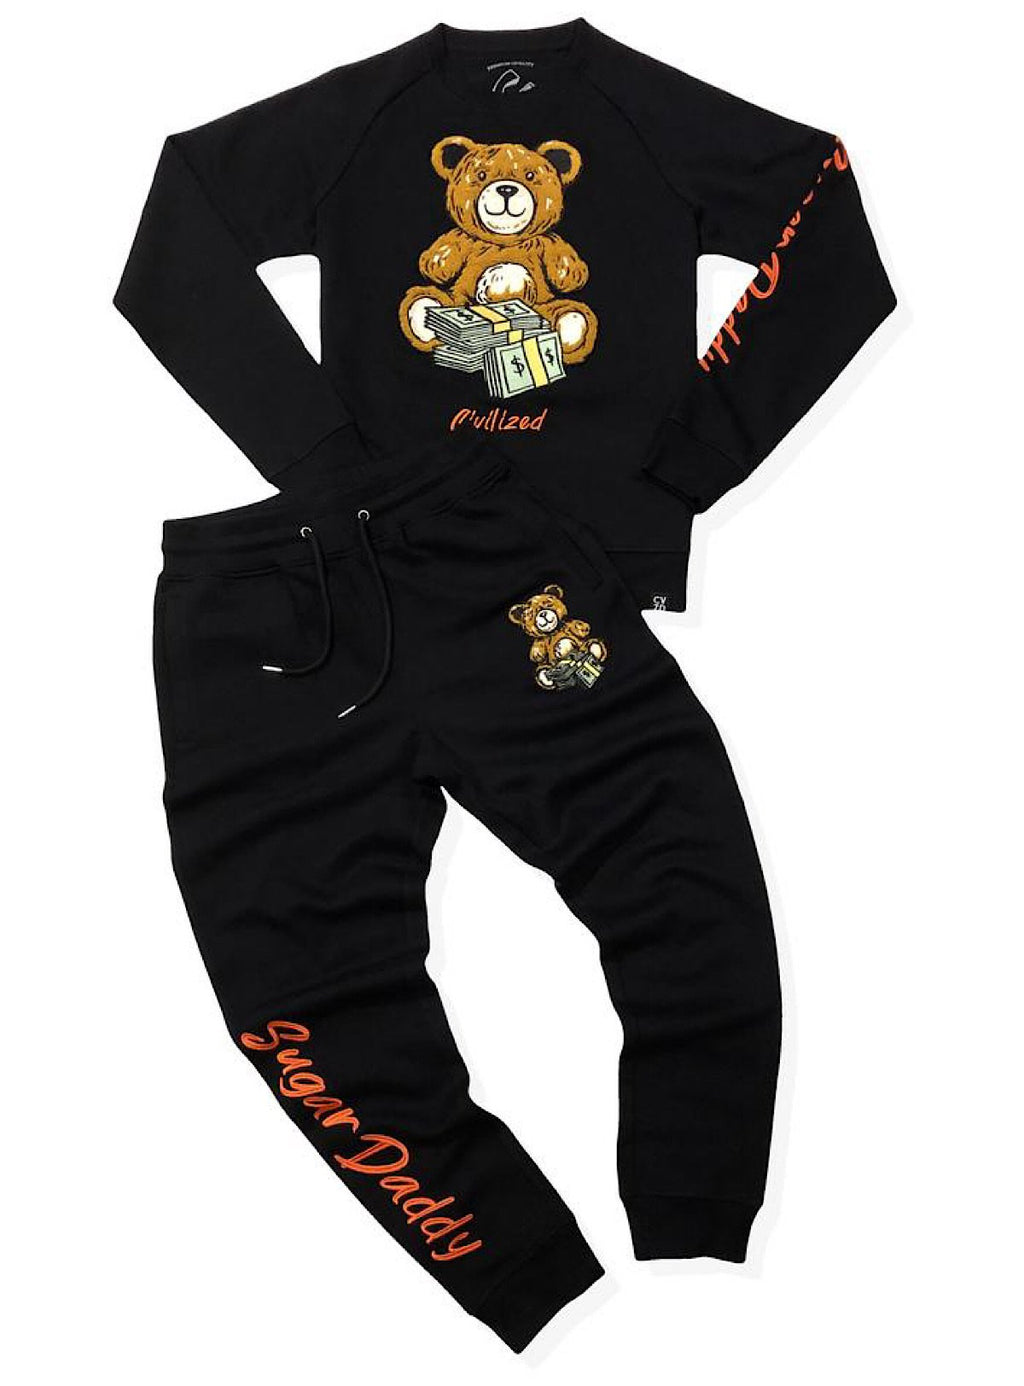 Civilized Sweatsuit - Sugar Daddy - Black And Orange